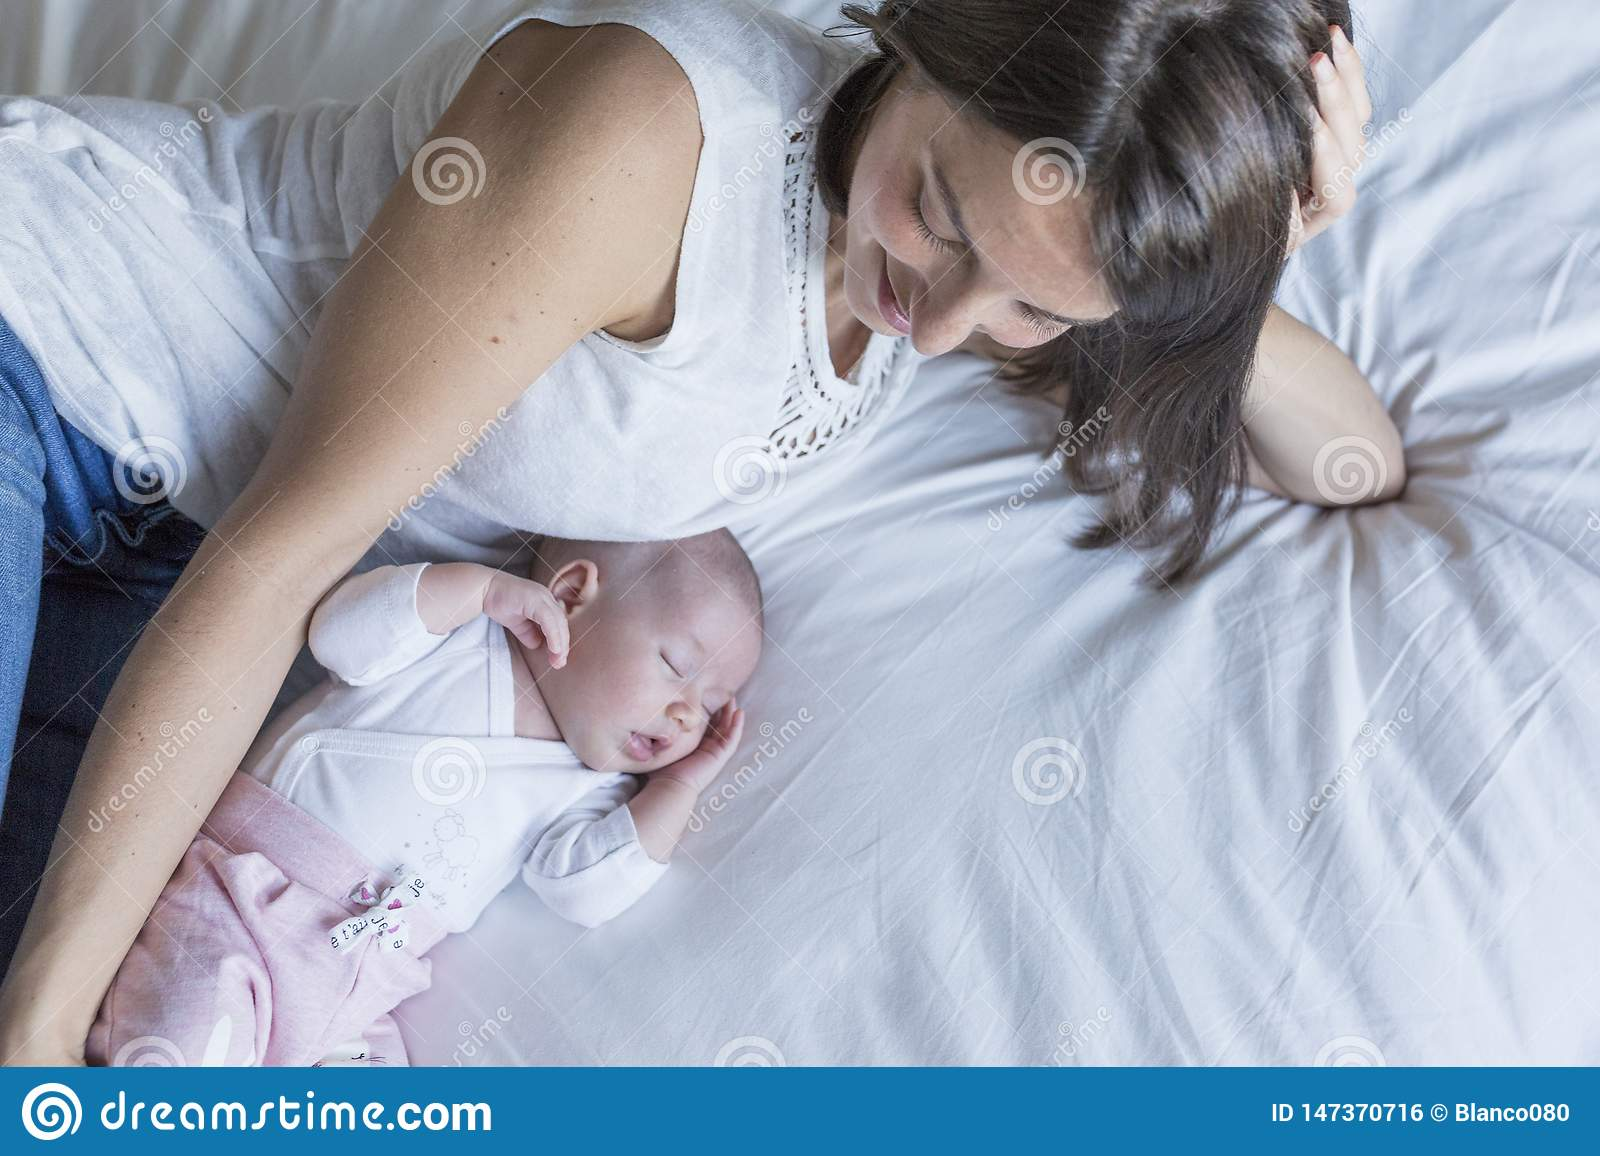 mother and baby at home lying on bed and relaxing. baby girl sleeping and mother looking at her. motherhood concept